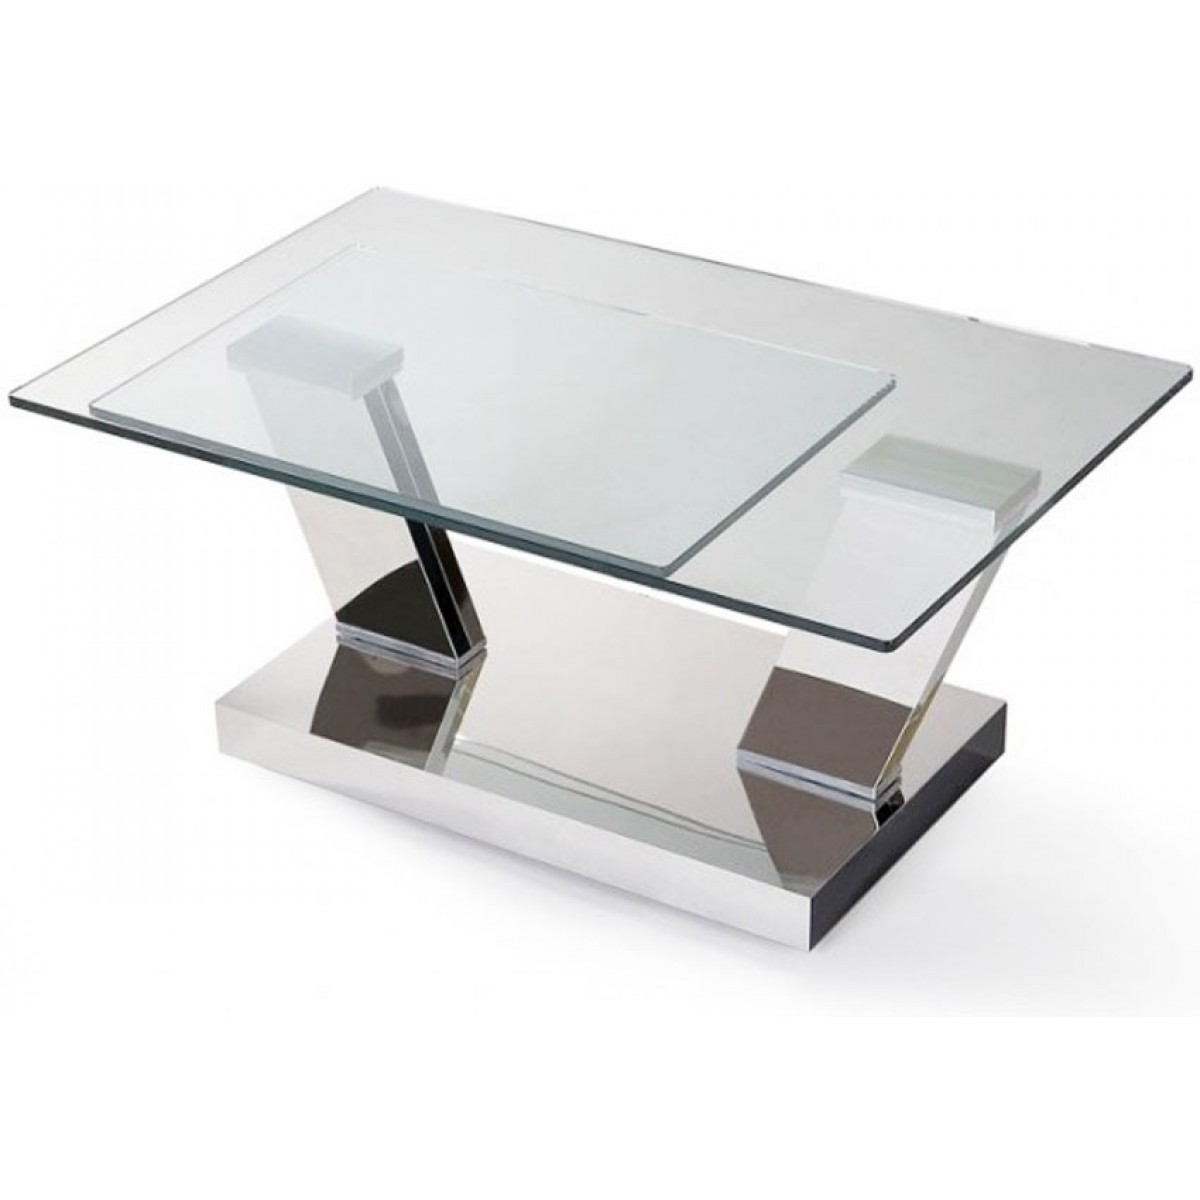 Table Basse Double Plateaux Transparents Carr S Chrom S